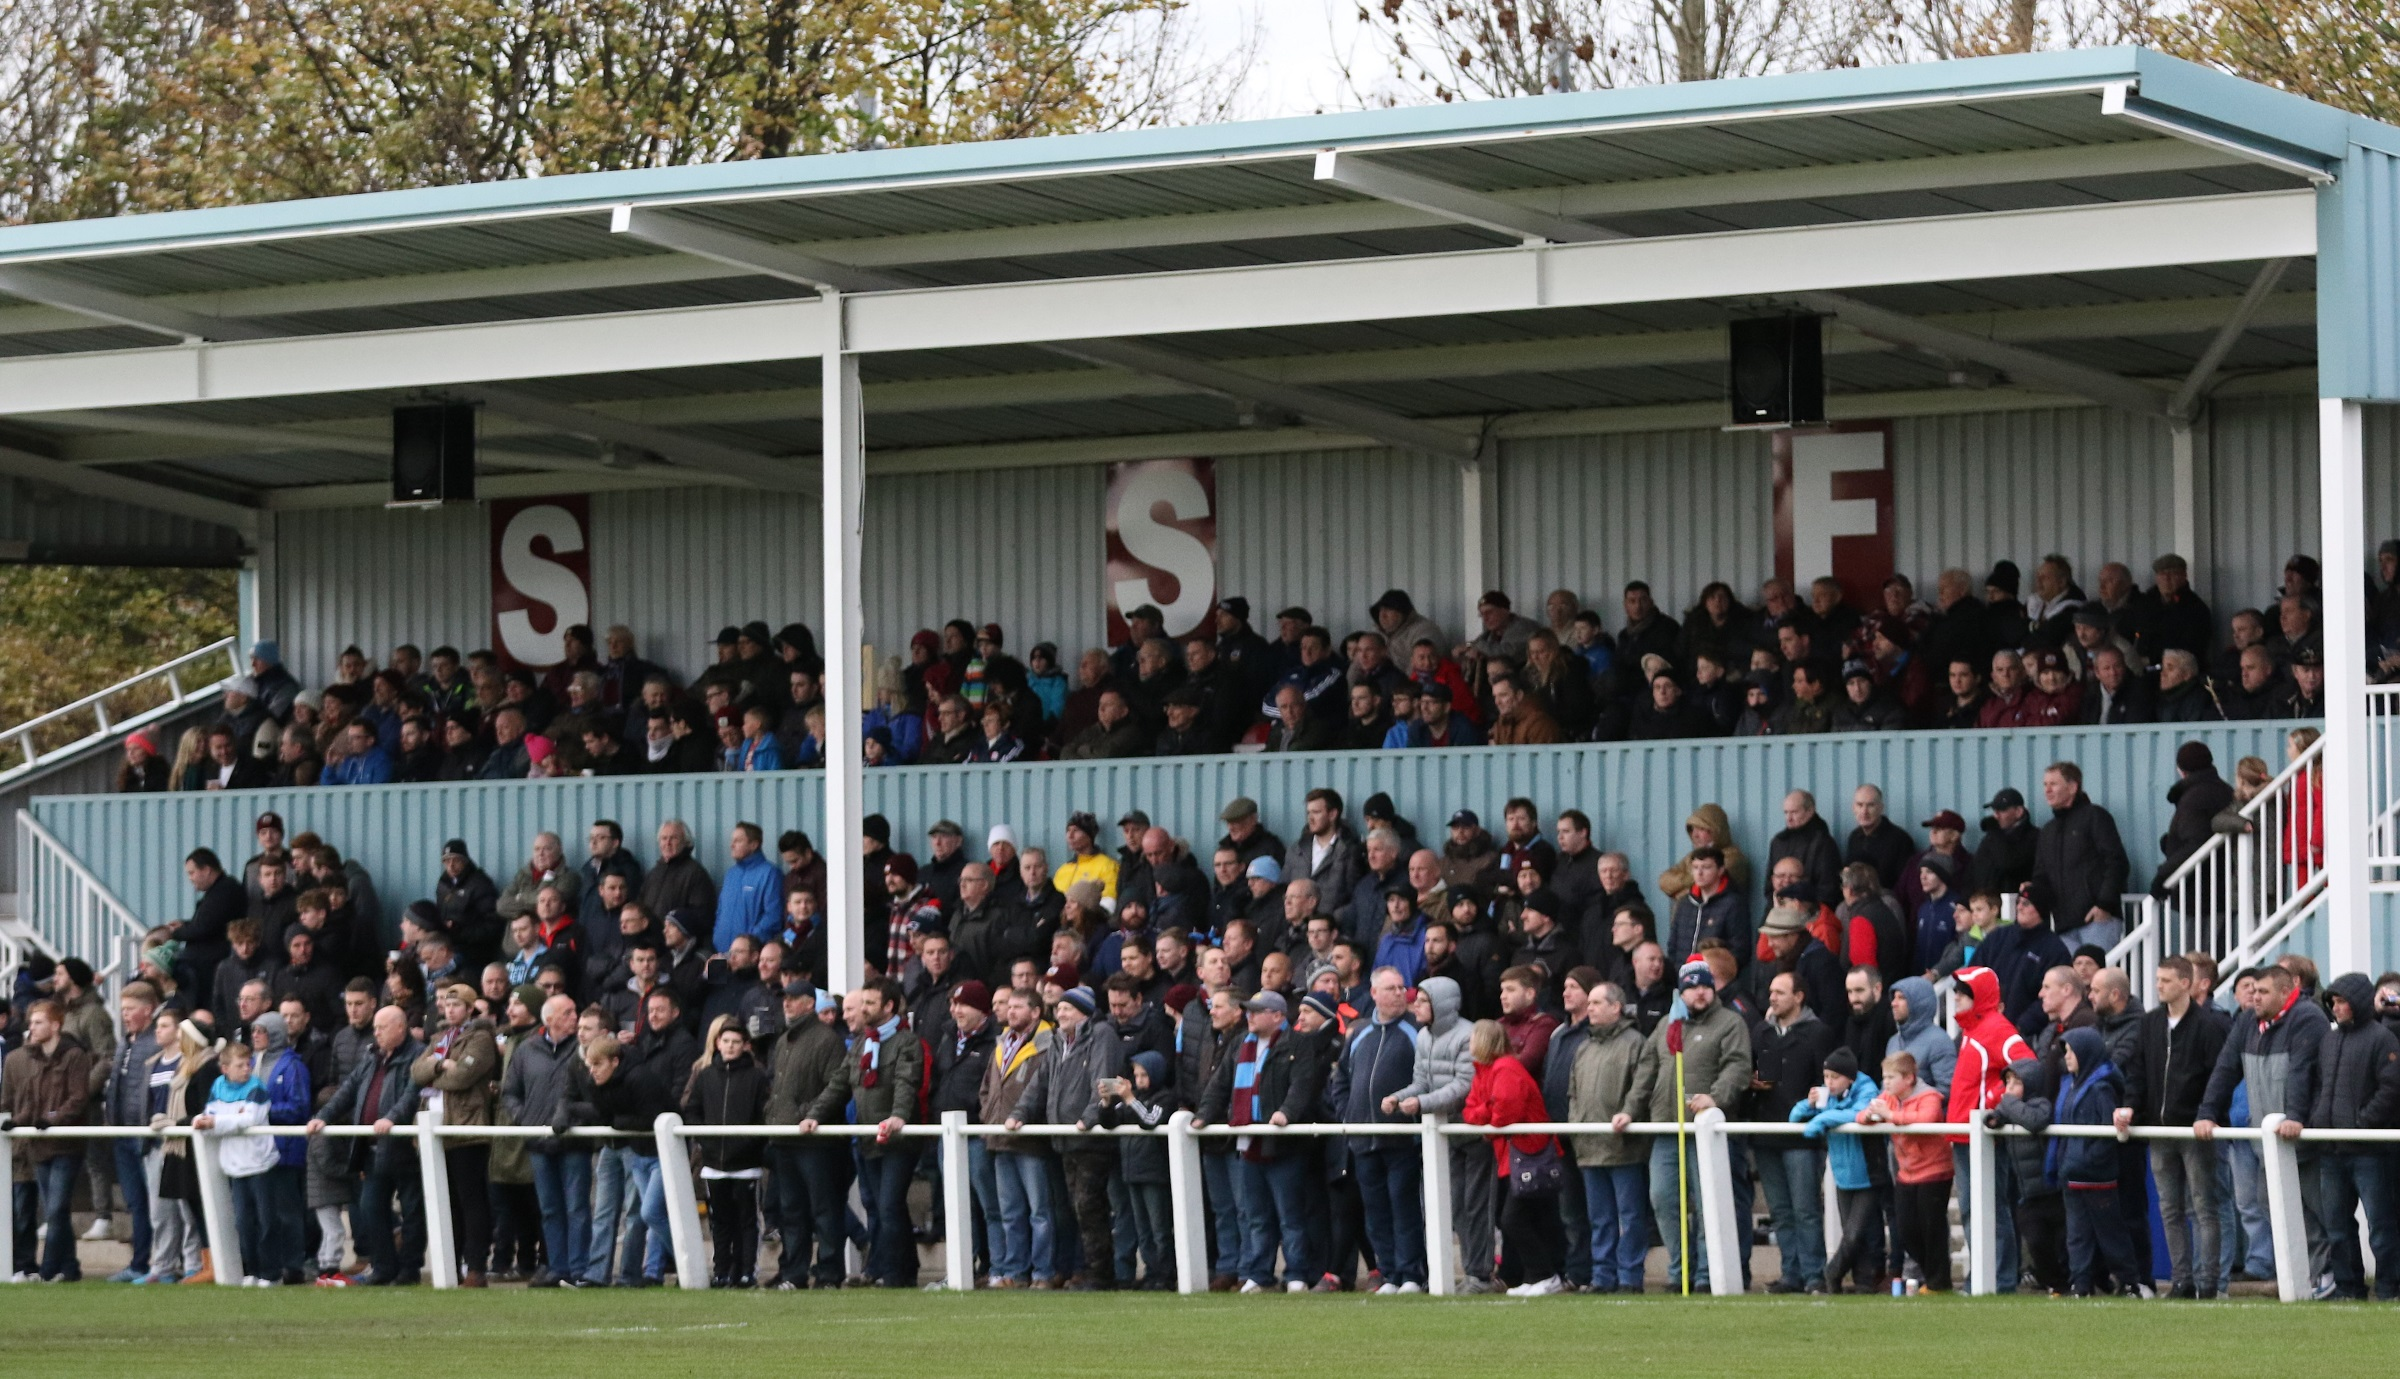 South Shields vs North Shields: Ticket and admission information